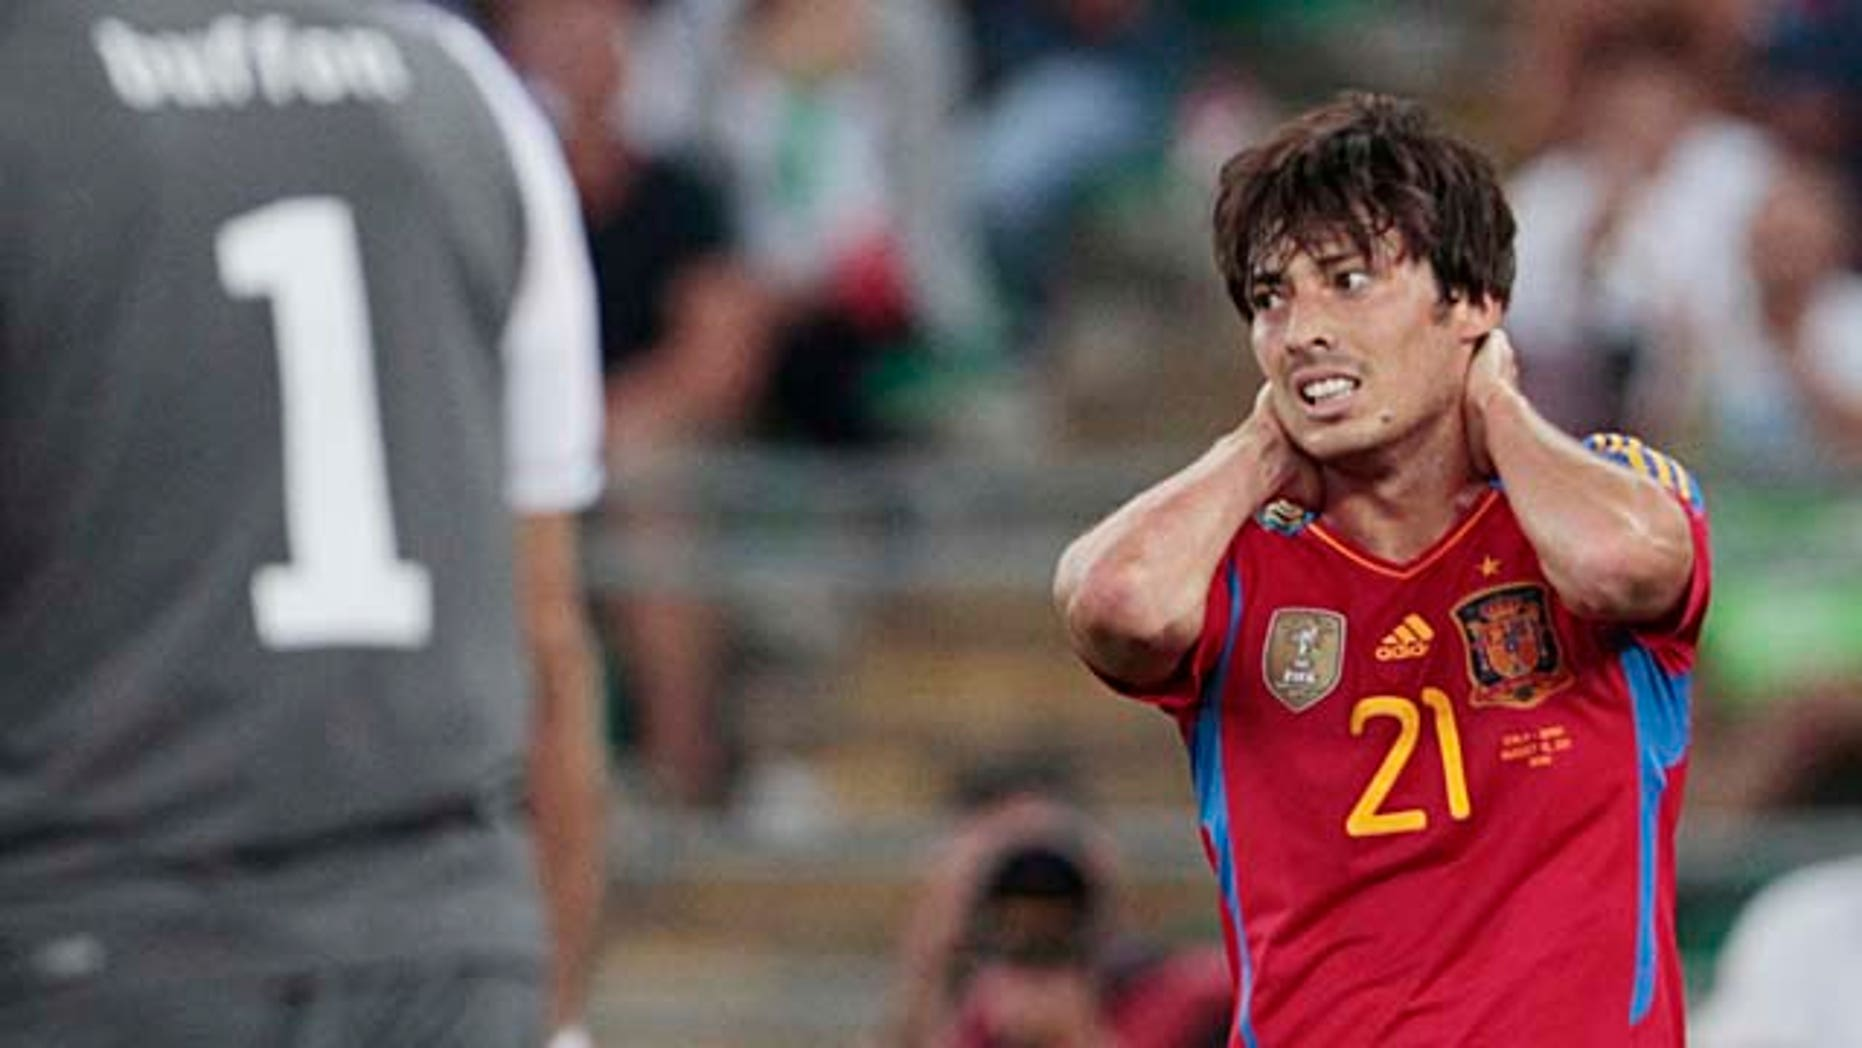 Spain's David Silva reacts after missing a scoring chance during a friendly soccer match against Italy in Bari, Italy, Wednesday, Aug. 10, 2011. Italy won 2-1. (AP Photo/Gregorio Borgia)